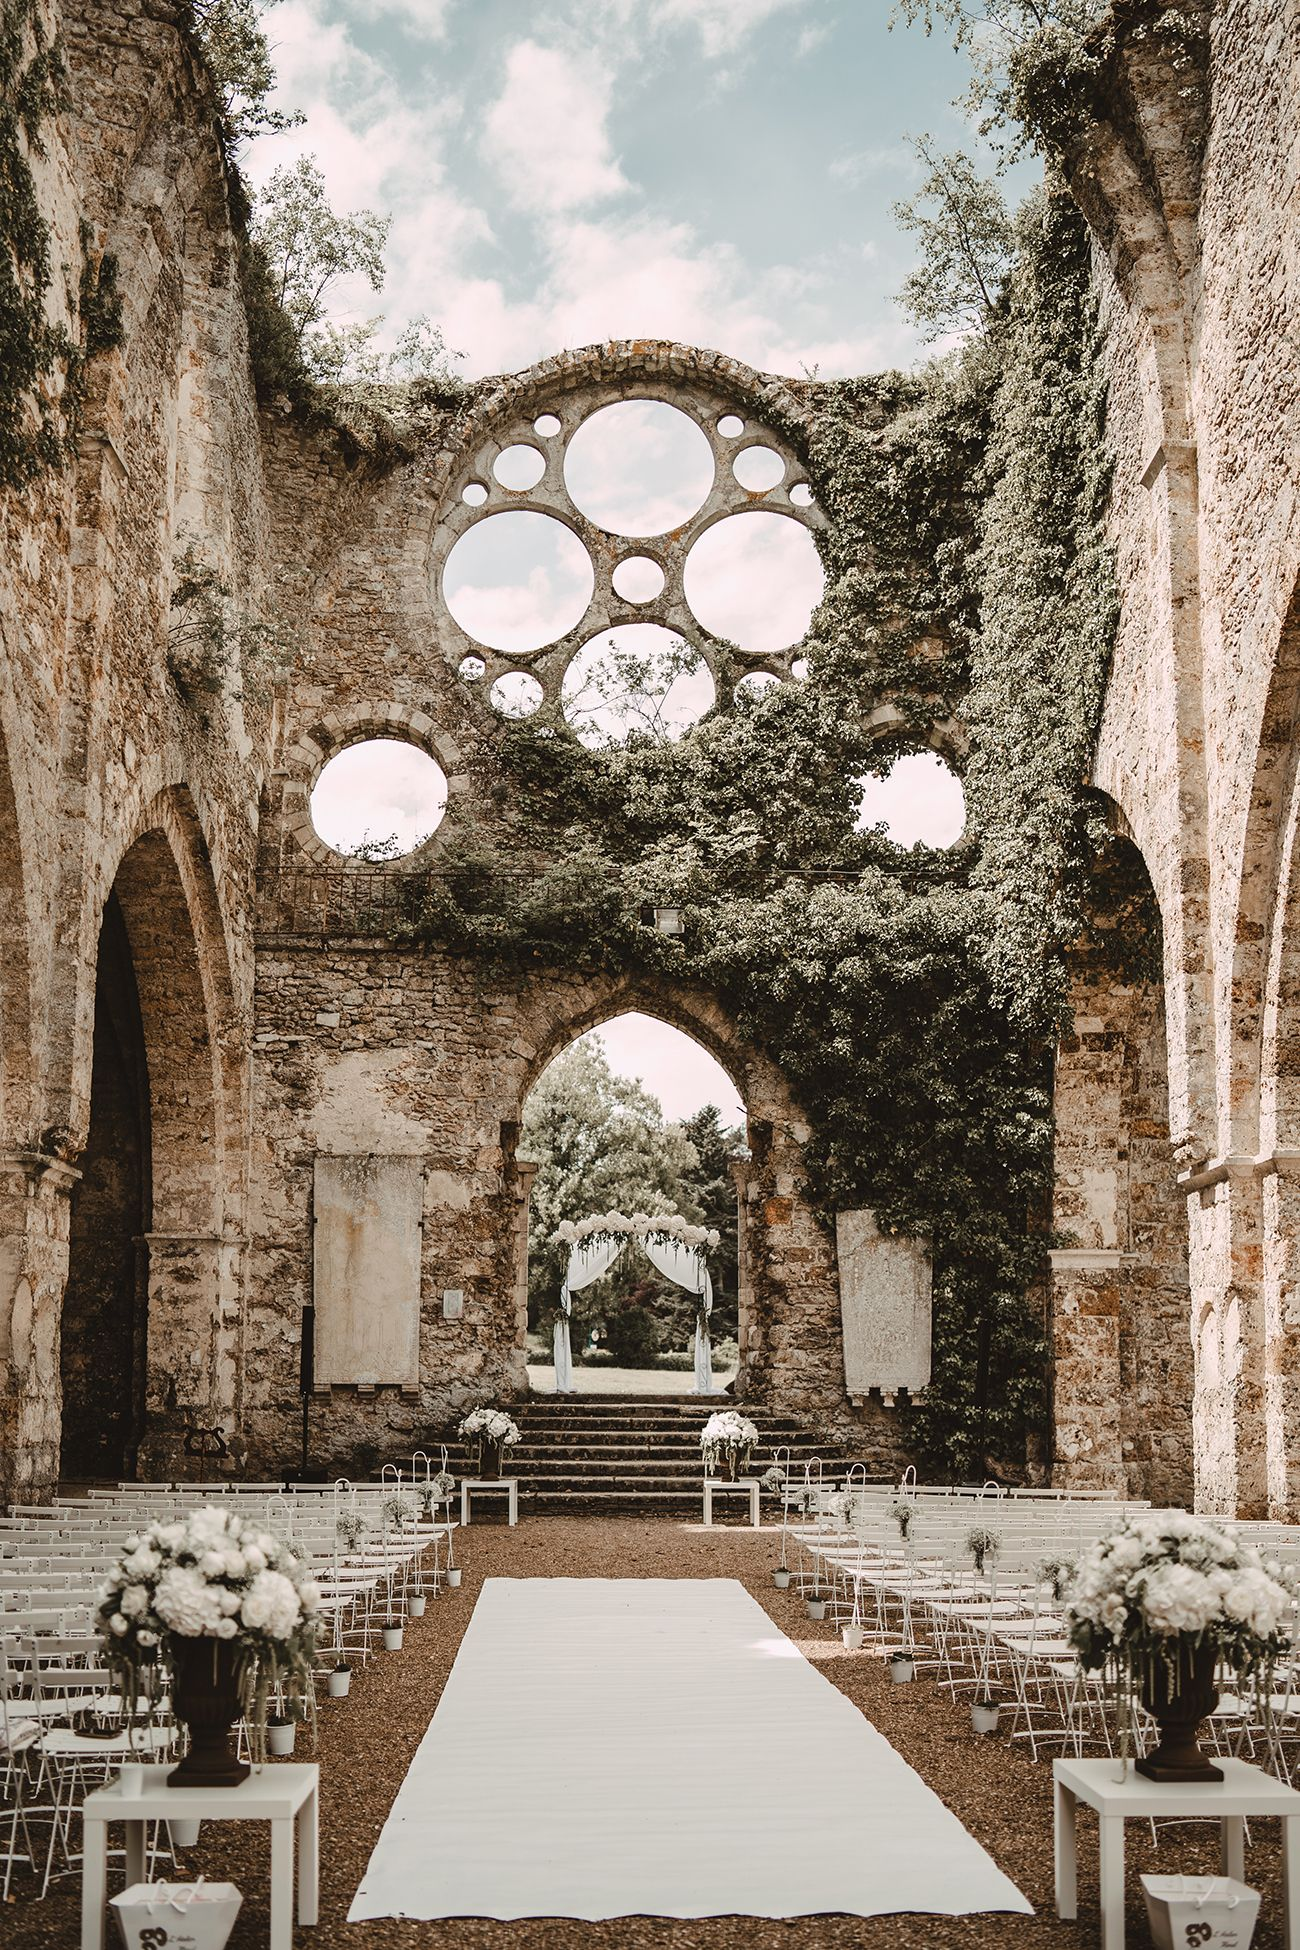 These Stunning Abandoned Buildings Will Make You Want to Have Your Wedding in Ruins  Green Wedding Shoes is part of Dream wedding venues - Some of these may be old abbeys, restored warehouses, fragments of castles left behind, there's even an abandoned train station, too! If you're a lover of old buildings and those that don't necessarily have major curb appeal, but rather delight with their worn stones and overgrown greenery, get ready! You're going to fall head over heels for these historical beauties